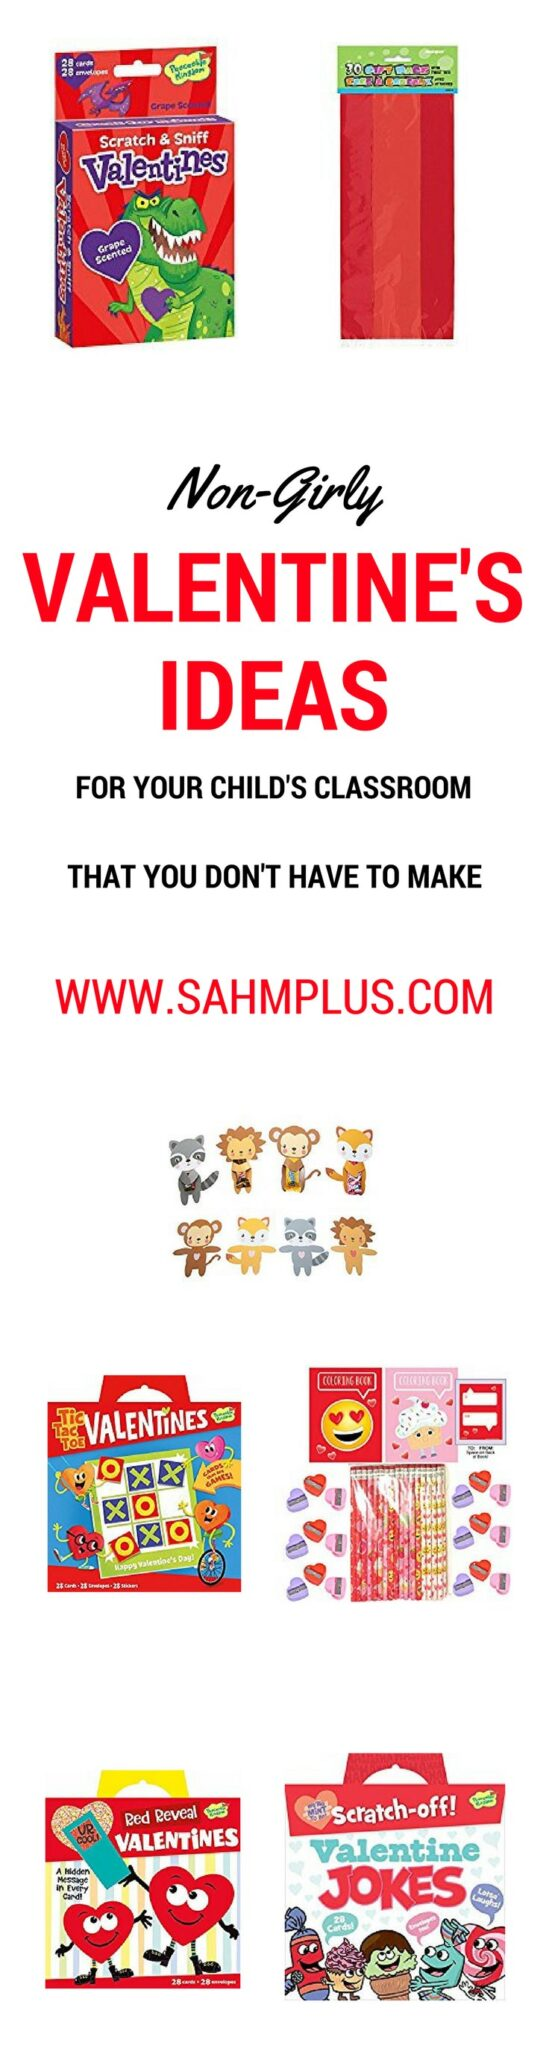 Valentine's Day cards for your child's classroom that aren't girly, you don't have to make, and are non-candy